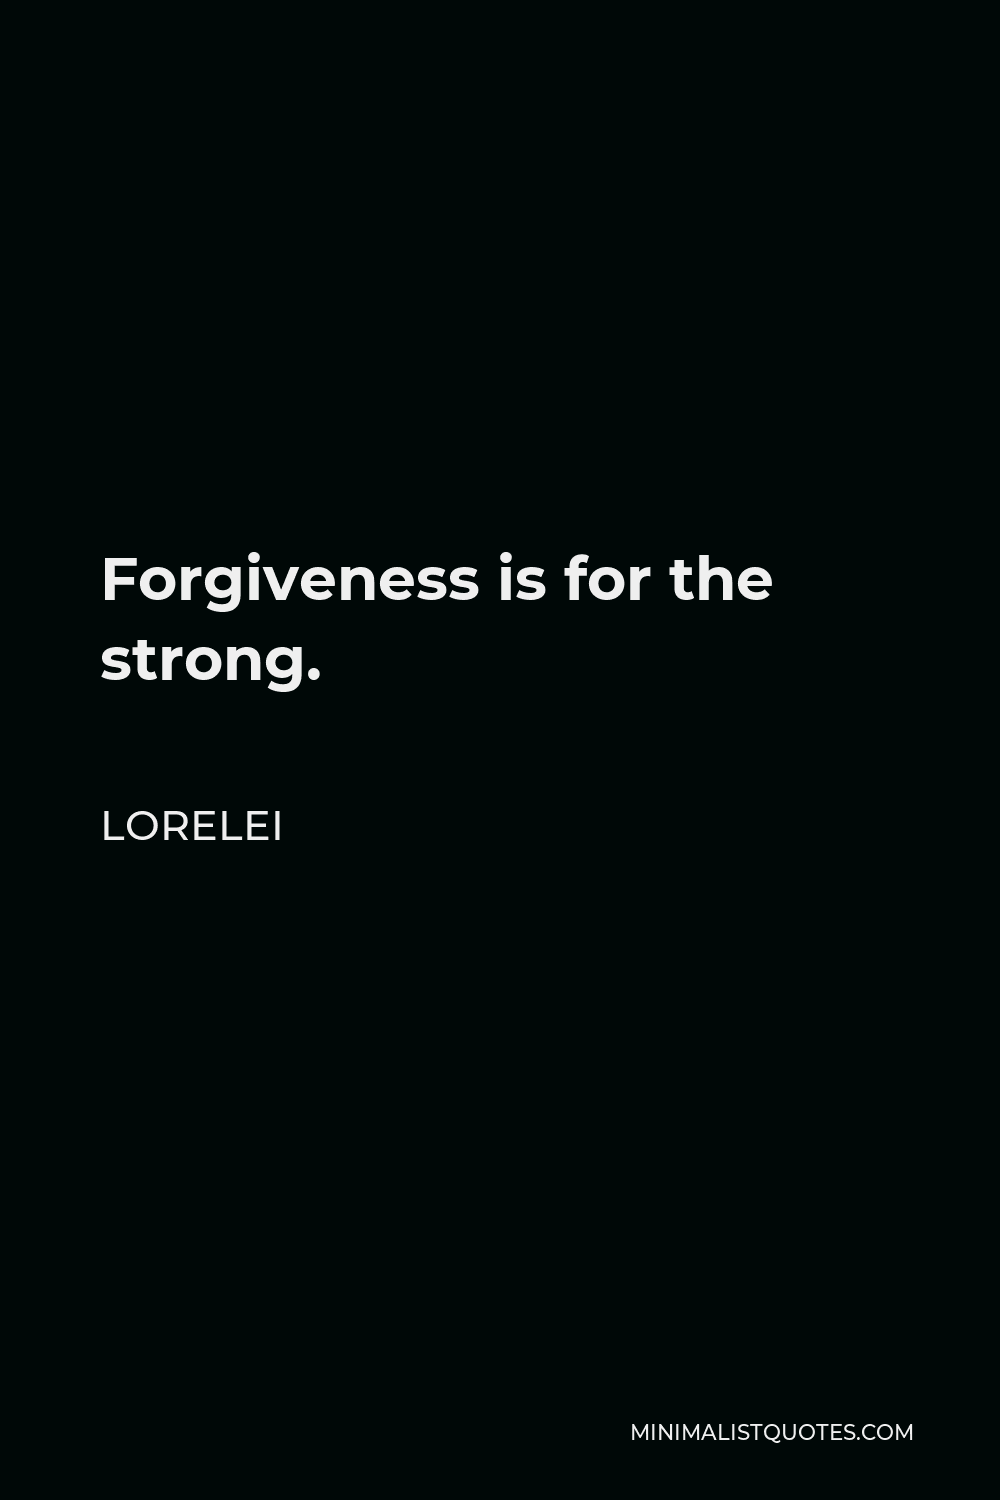 Lorelei Quote - Forgiveness is for the strong.